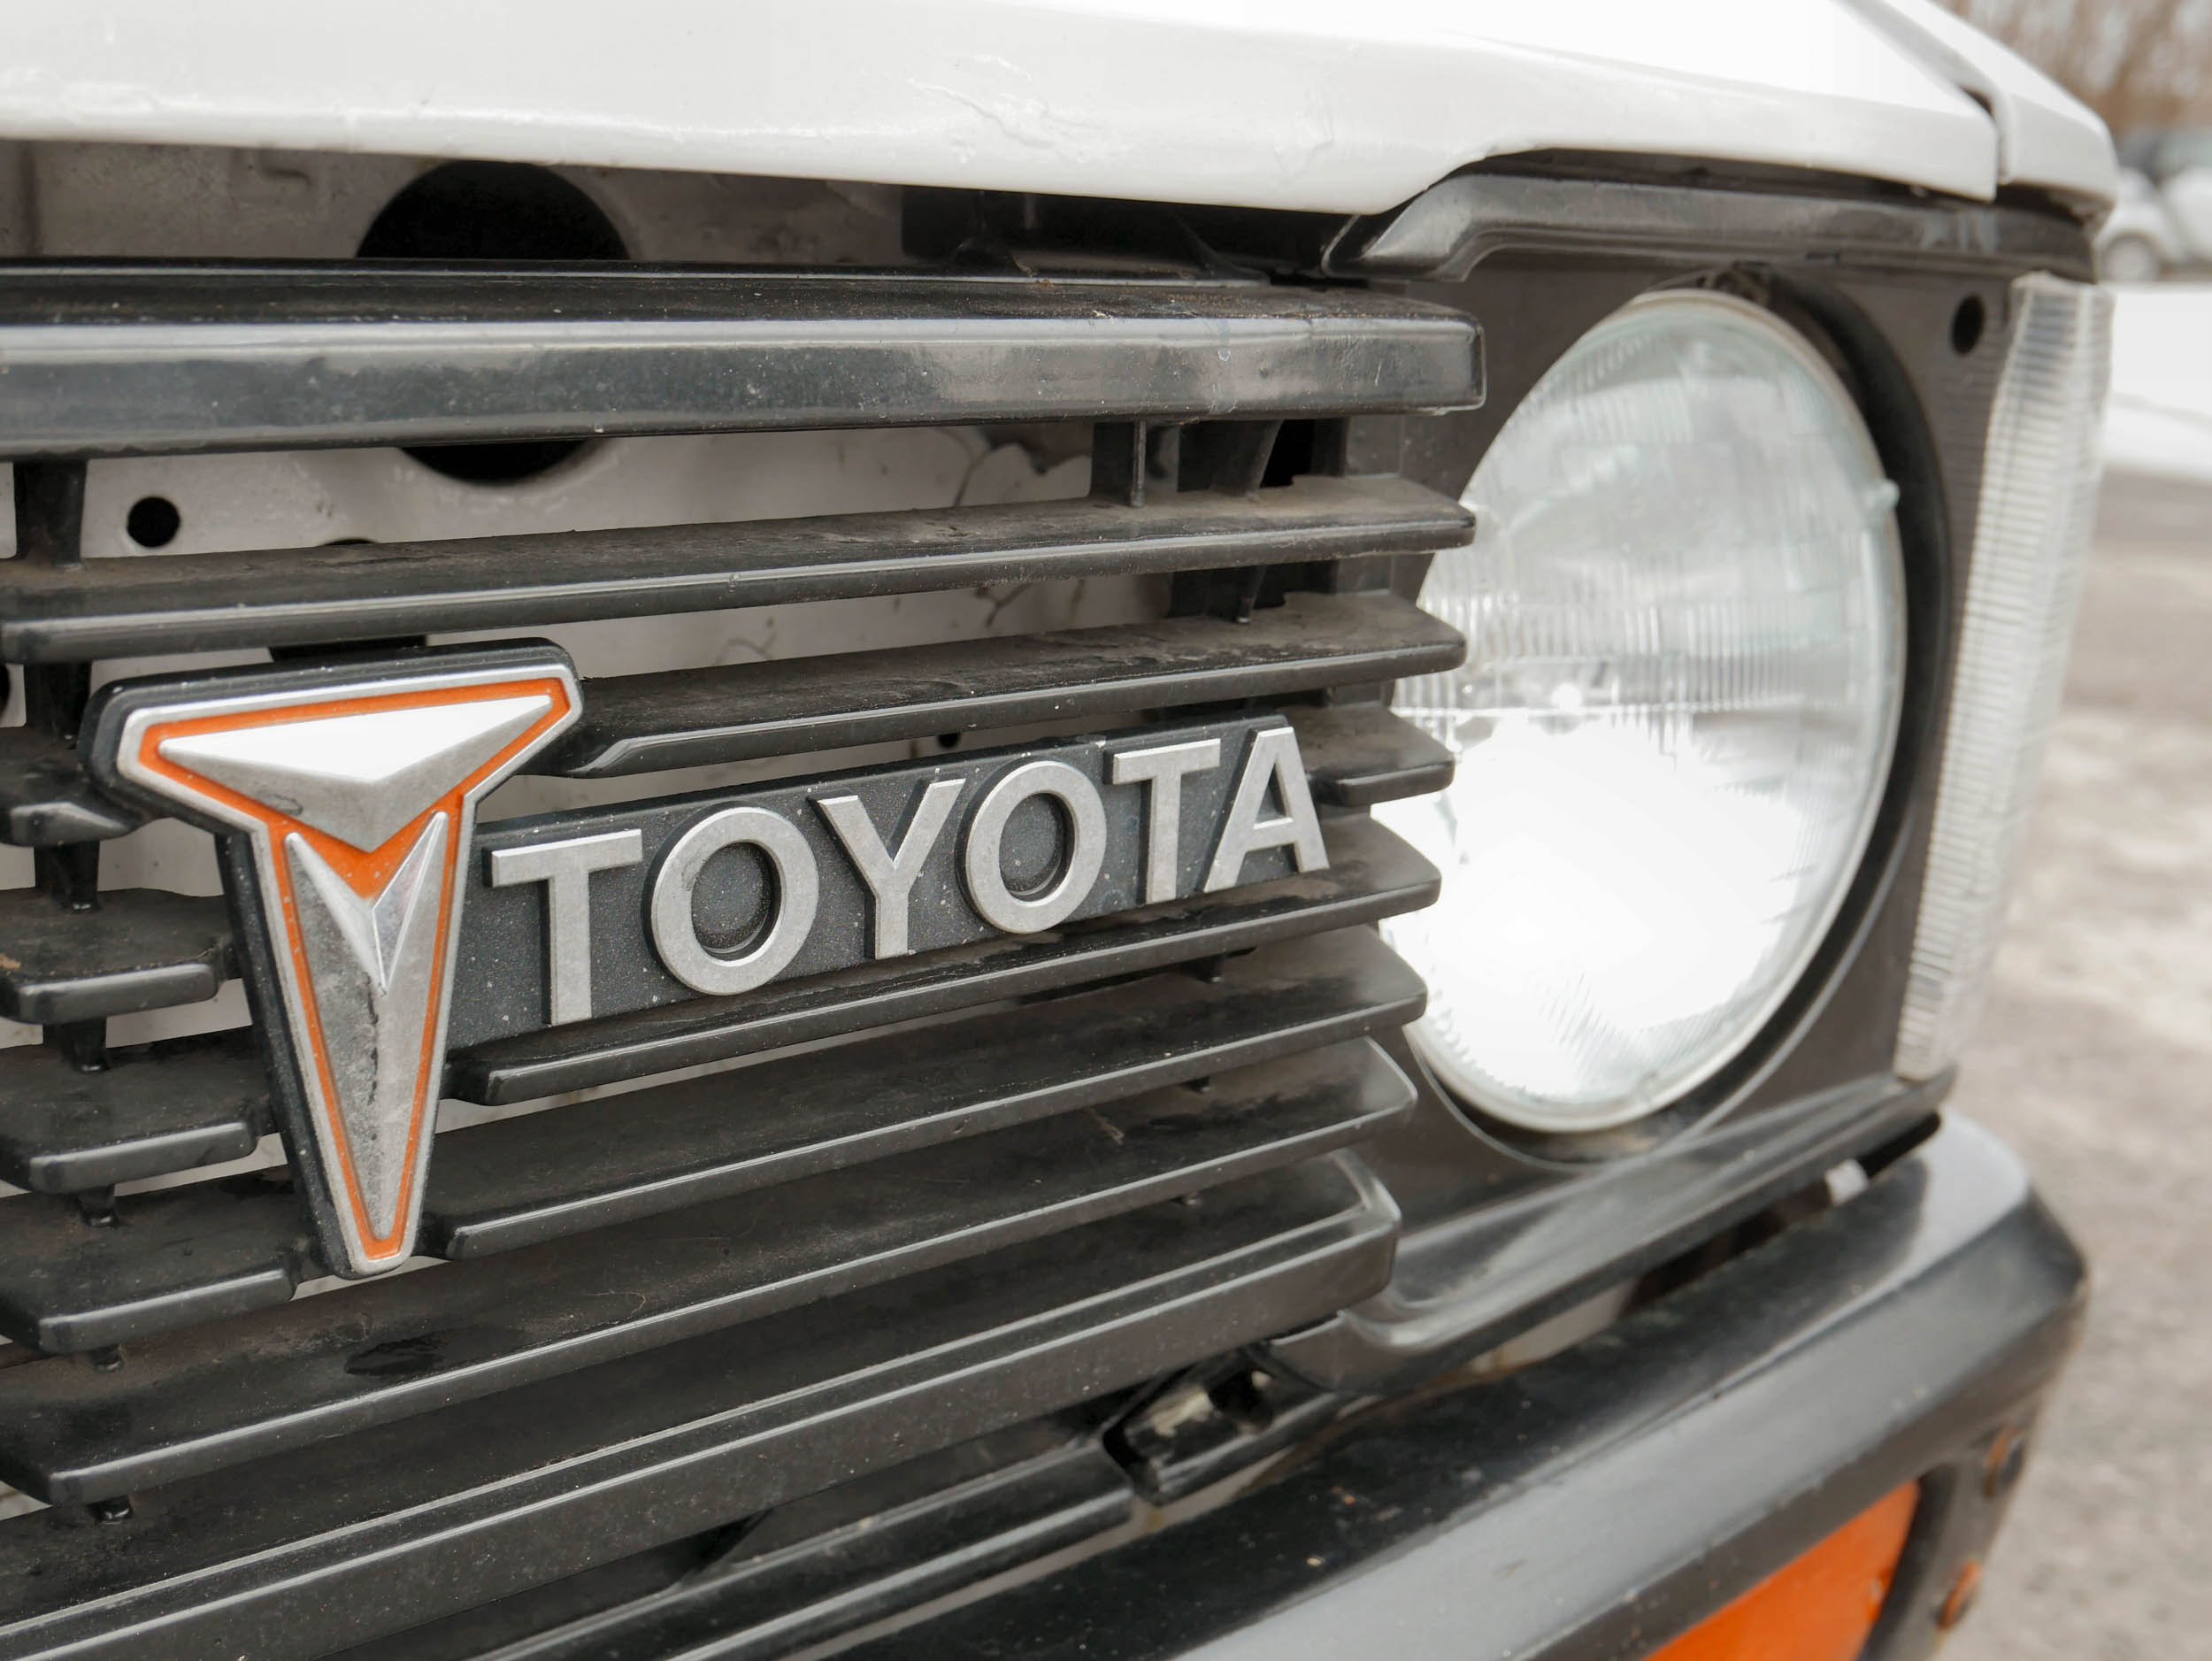 1980 Toyota dually flatbed badge detail